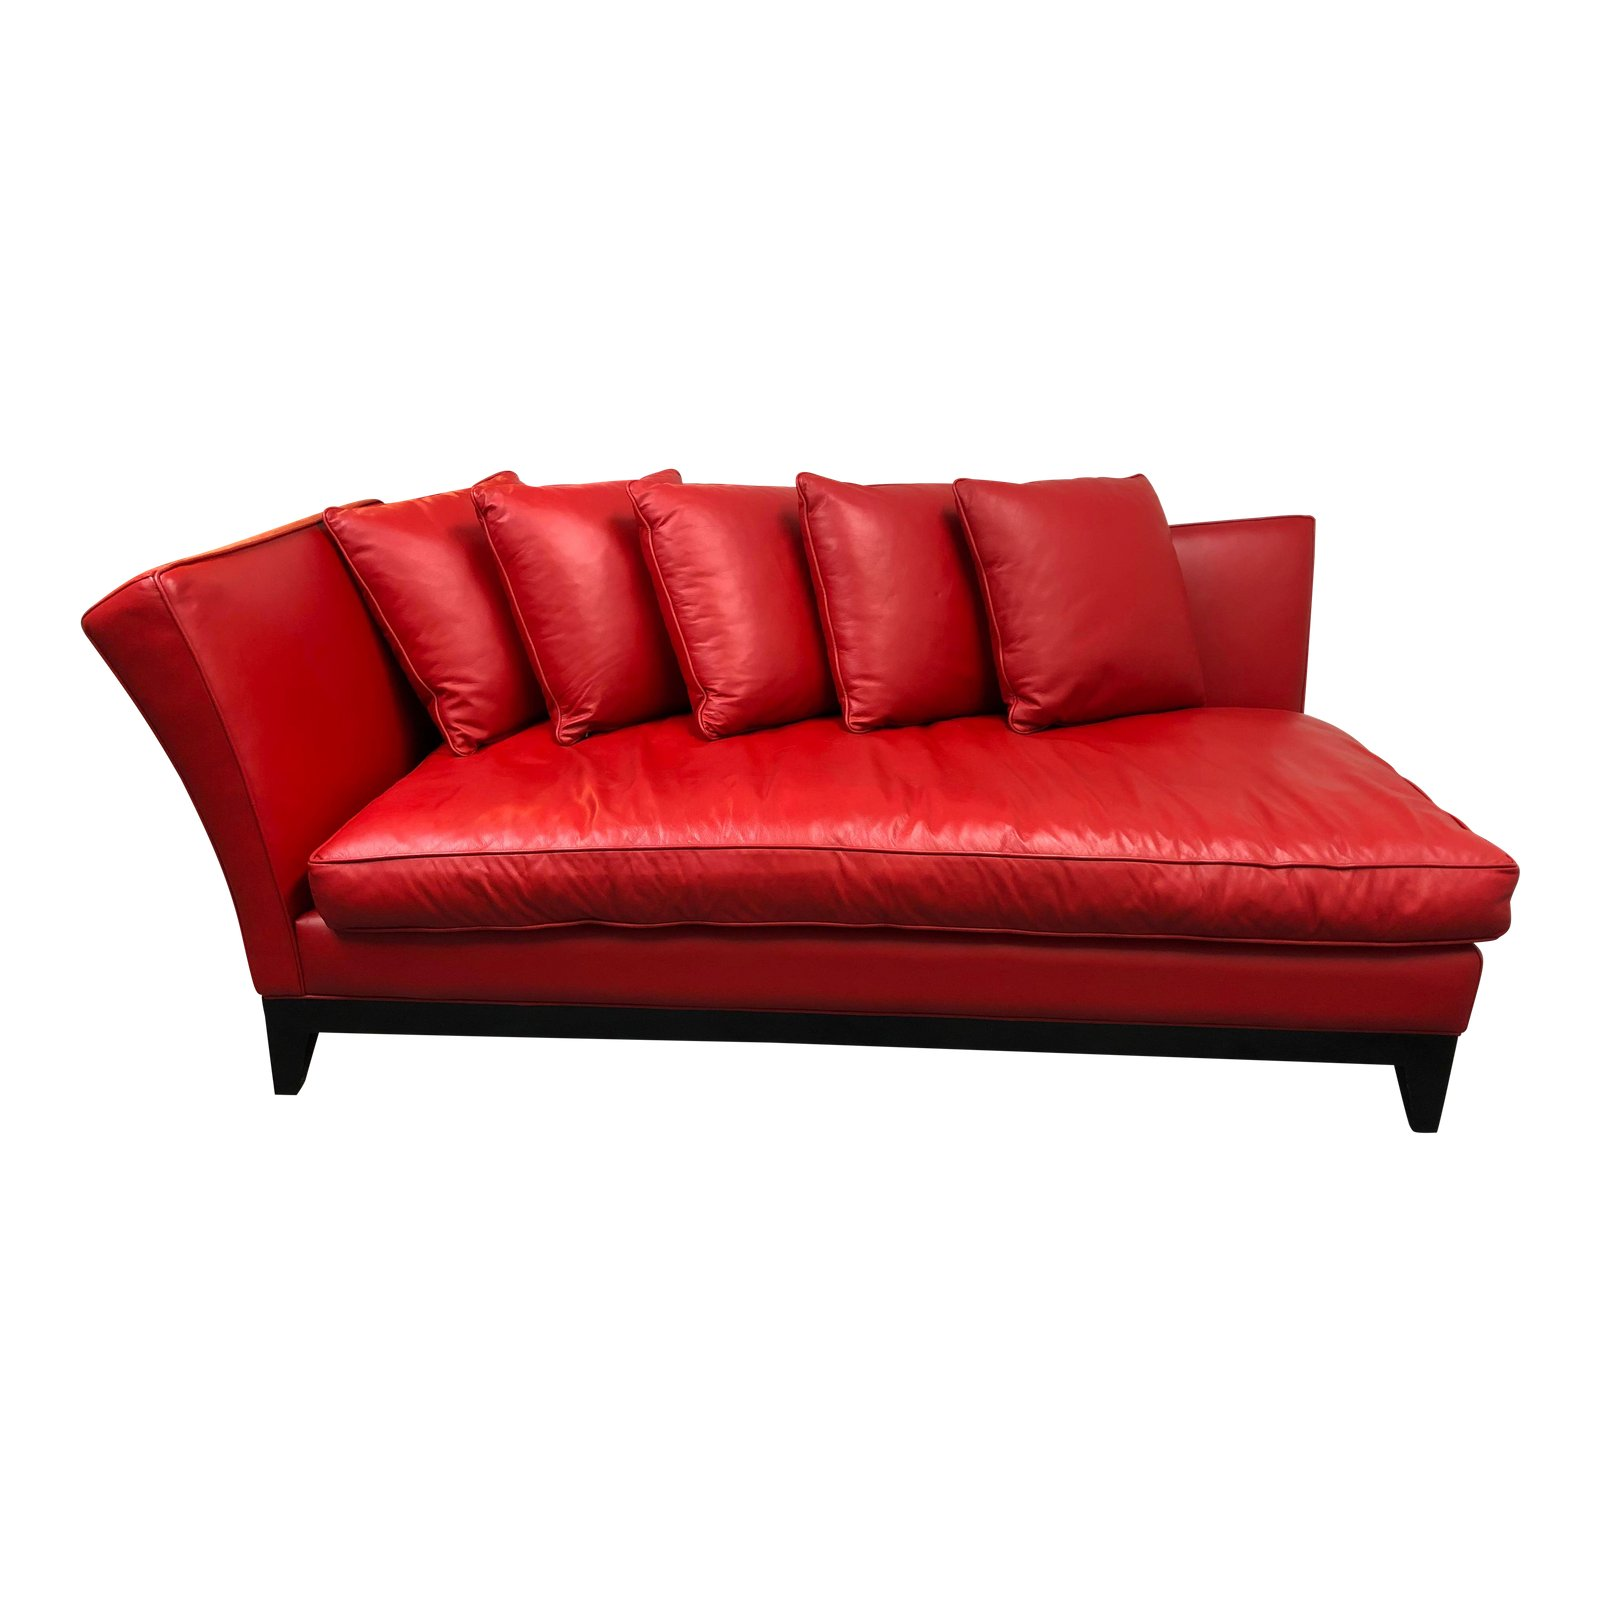 Custom Red Leather Chaise Sofa Lounge. Original Price: $10,000 ...